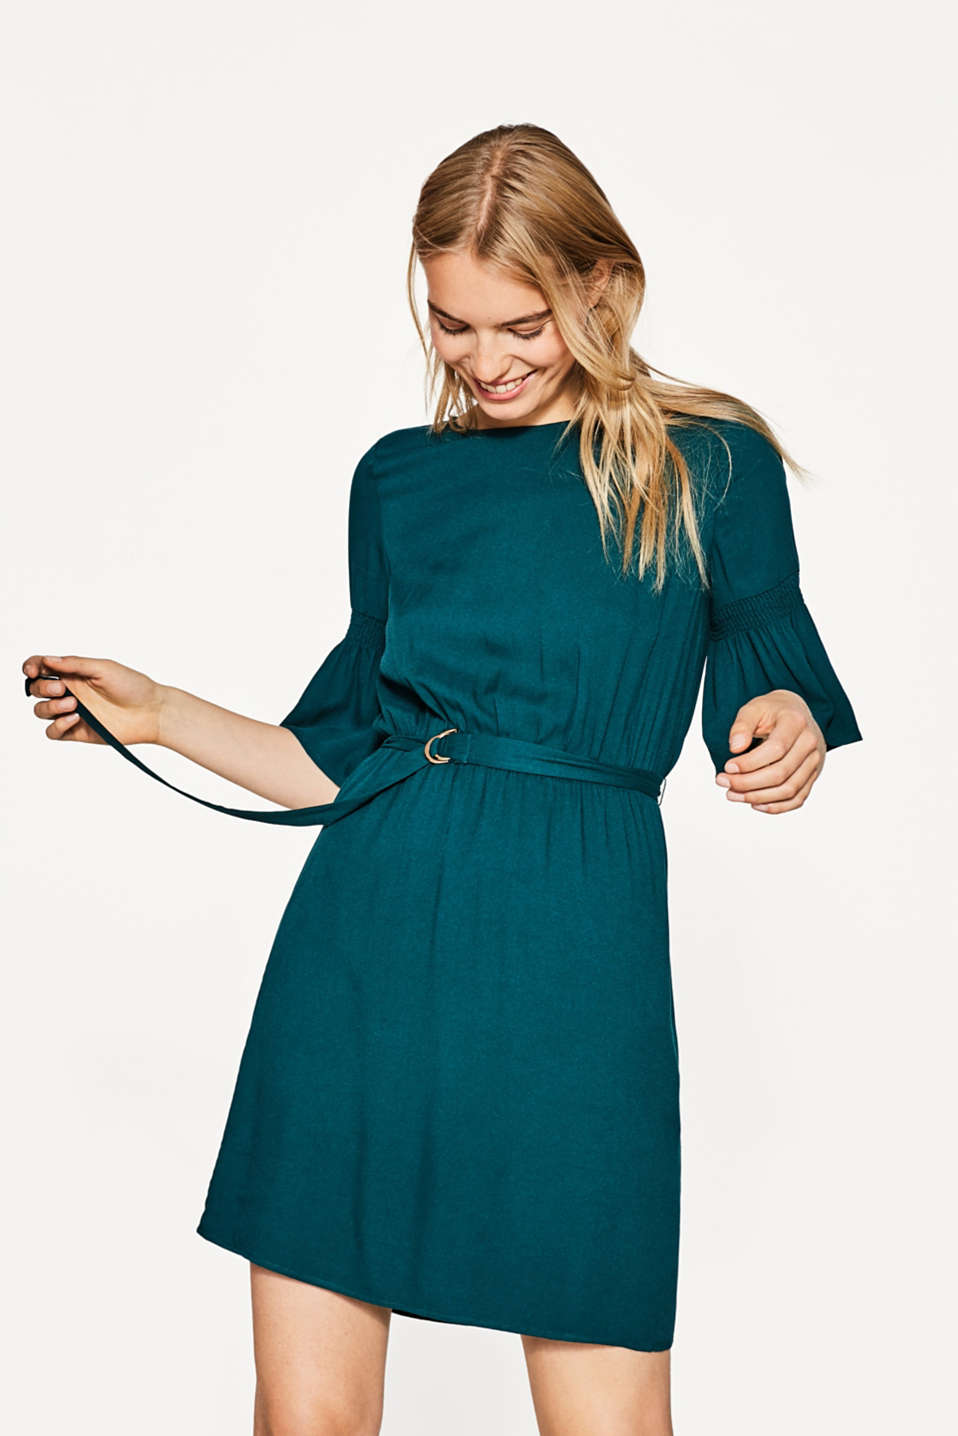 Esprit - Flowing dress with trendy details